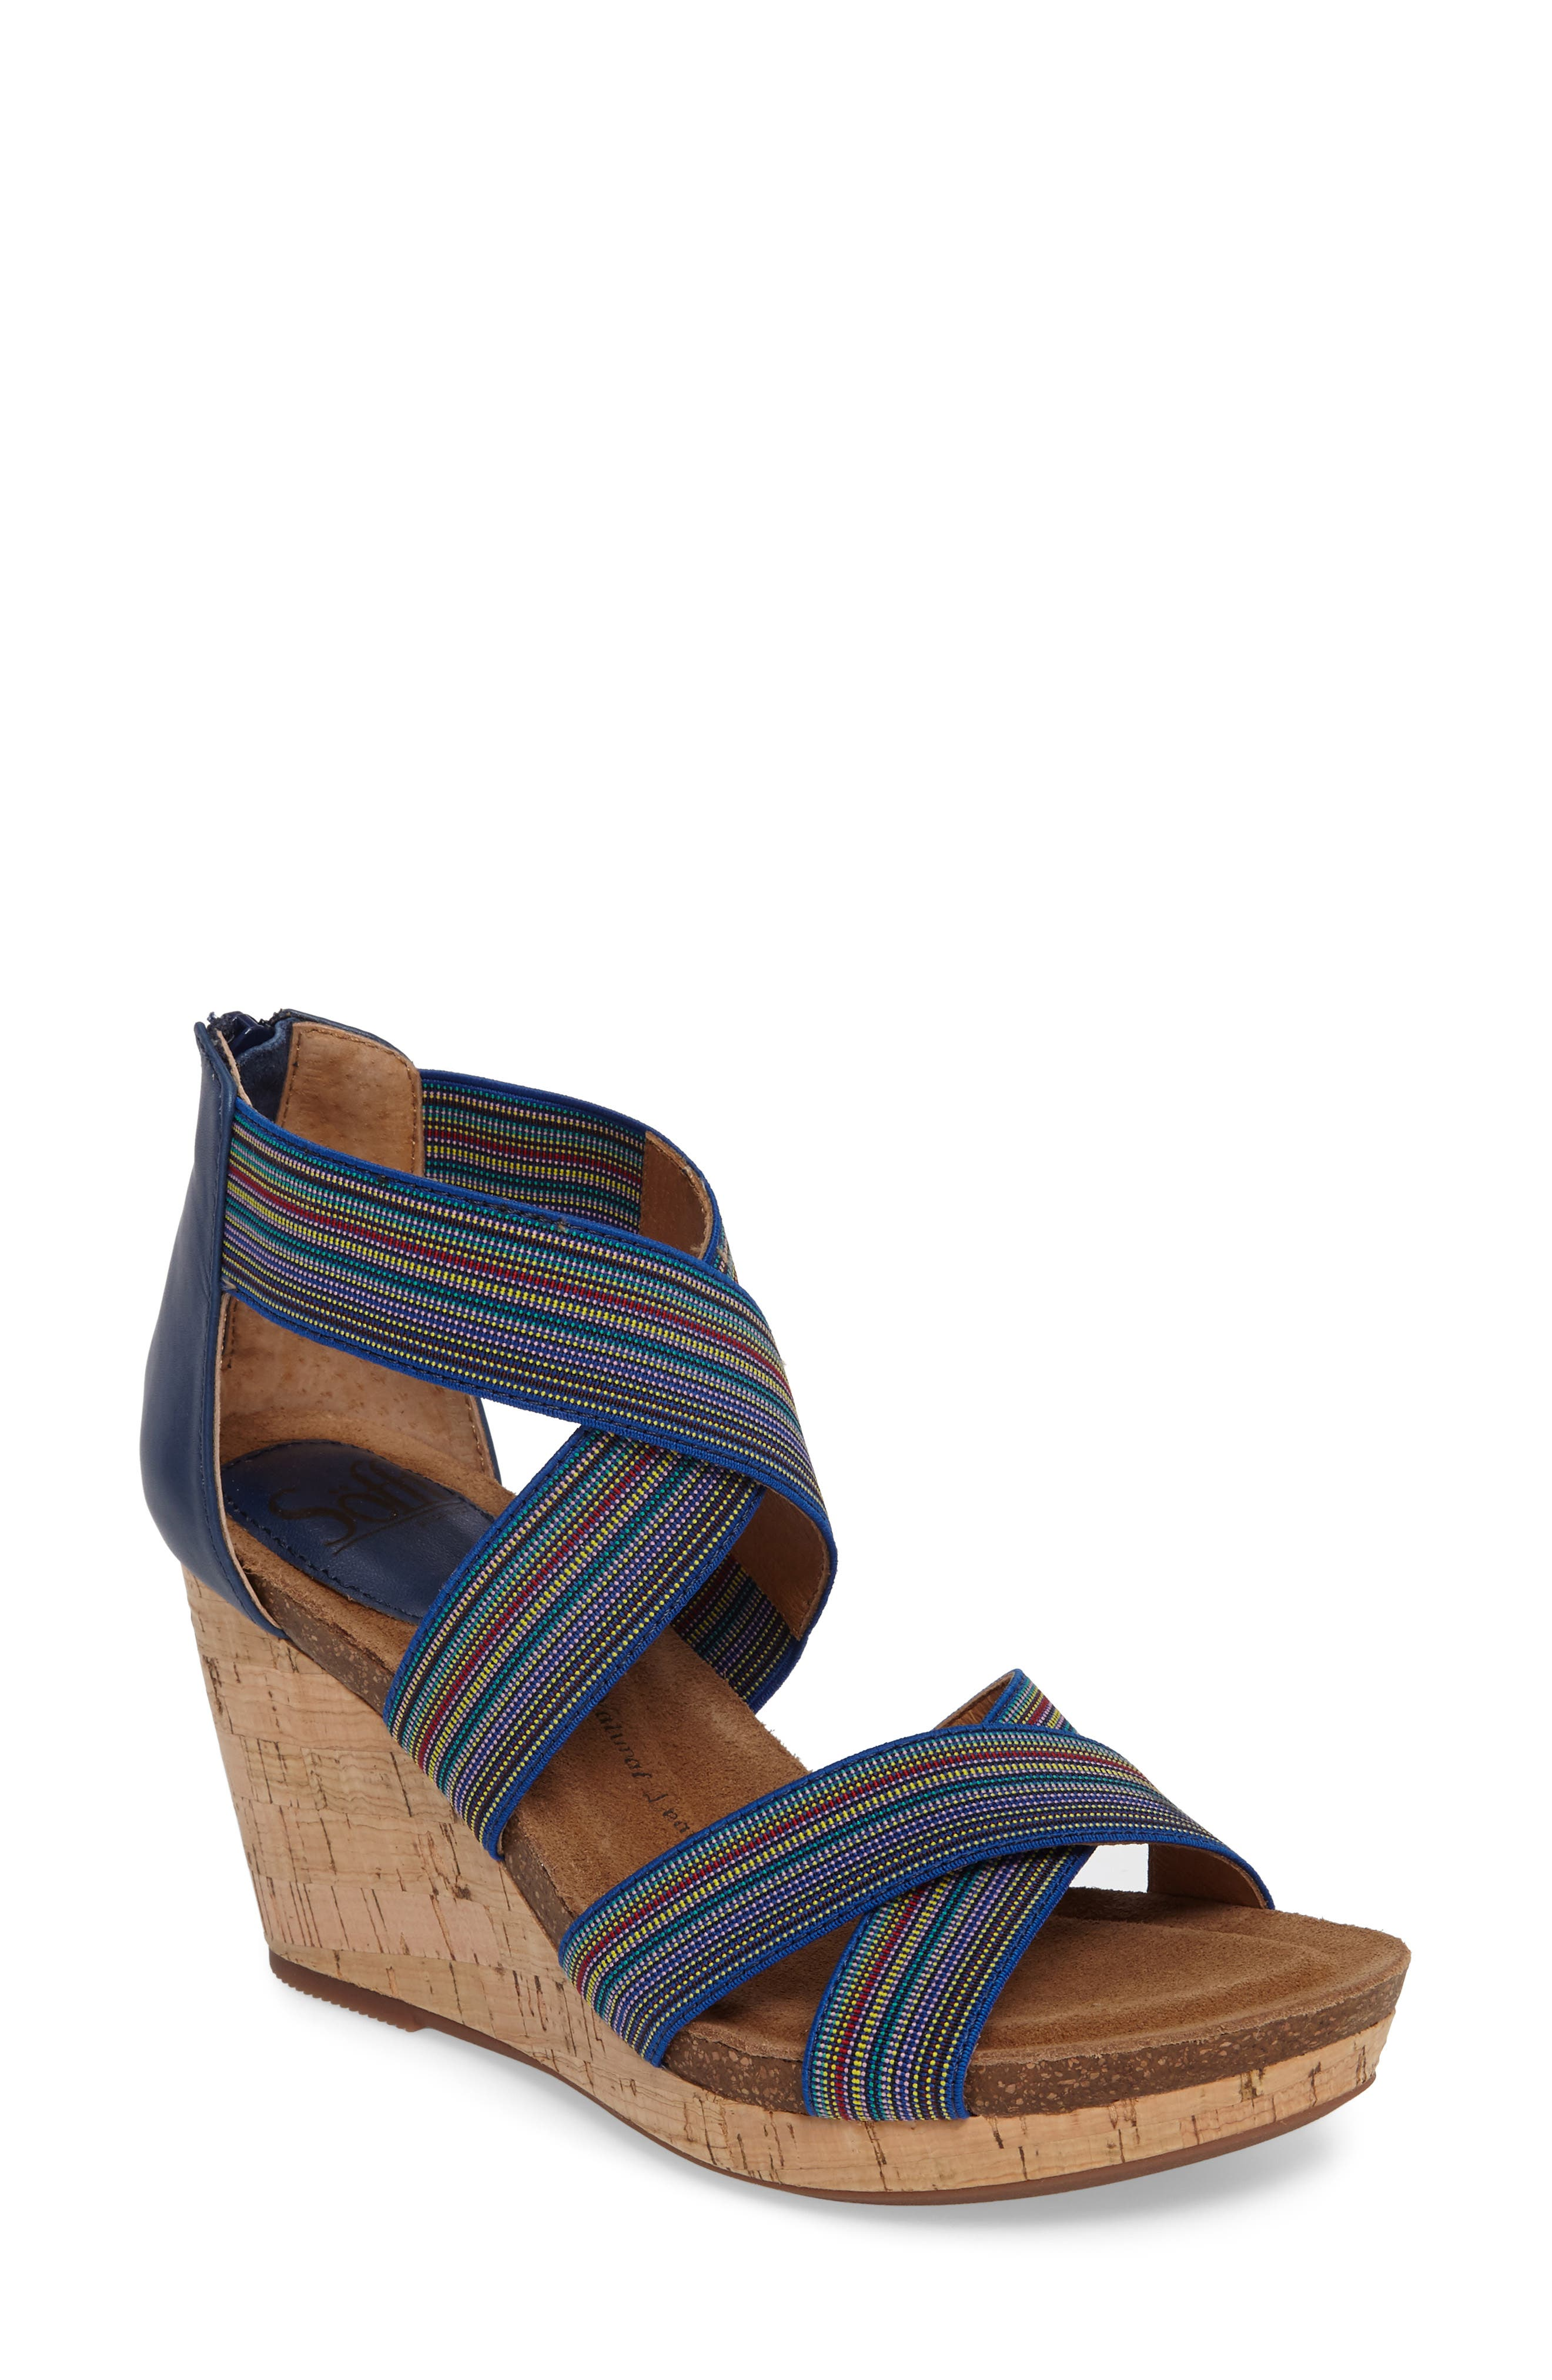 Cary Cross Strap Wedge Sandal,                             Main thumbnail 2, color,